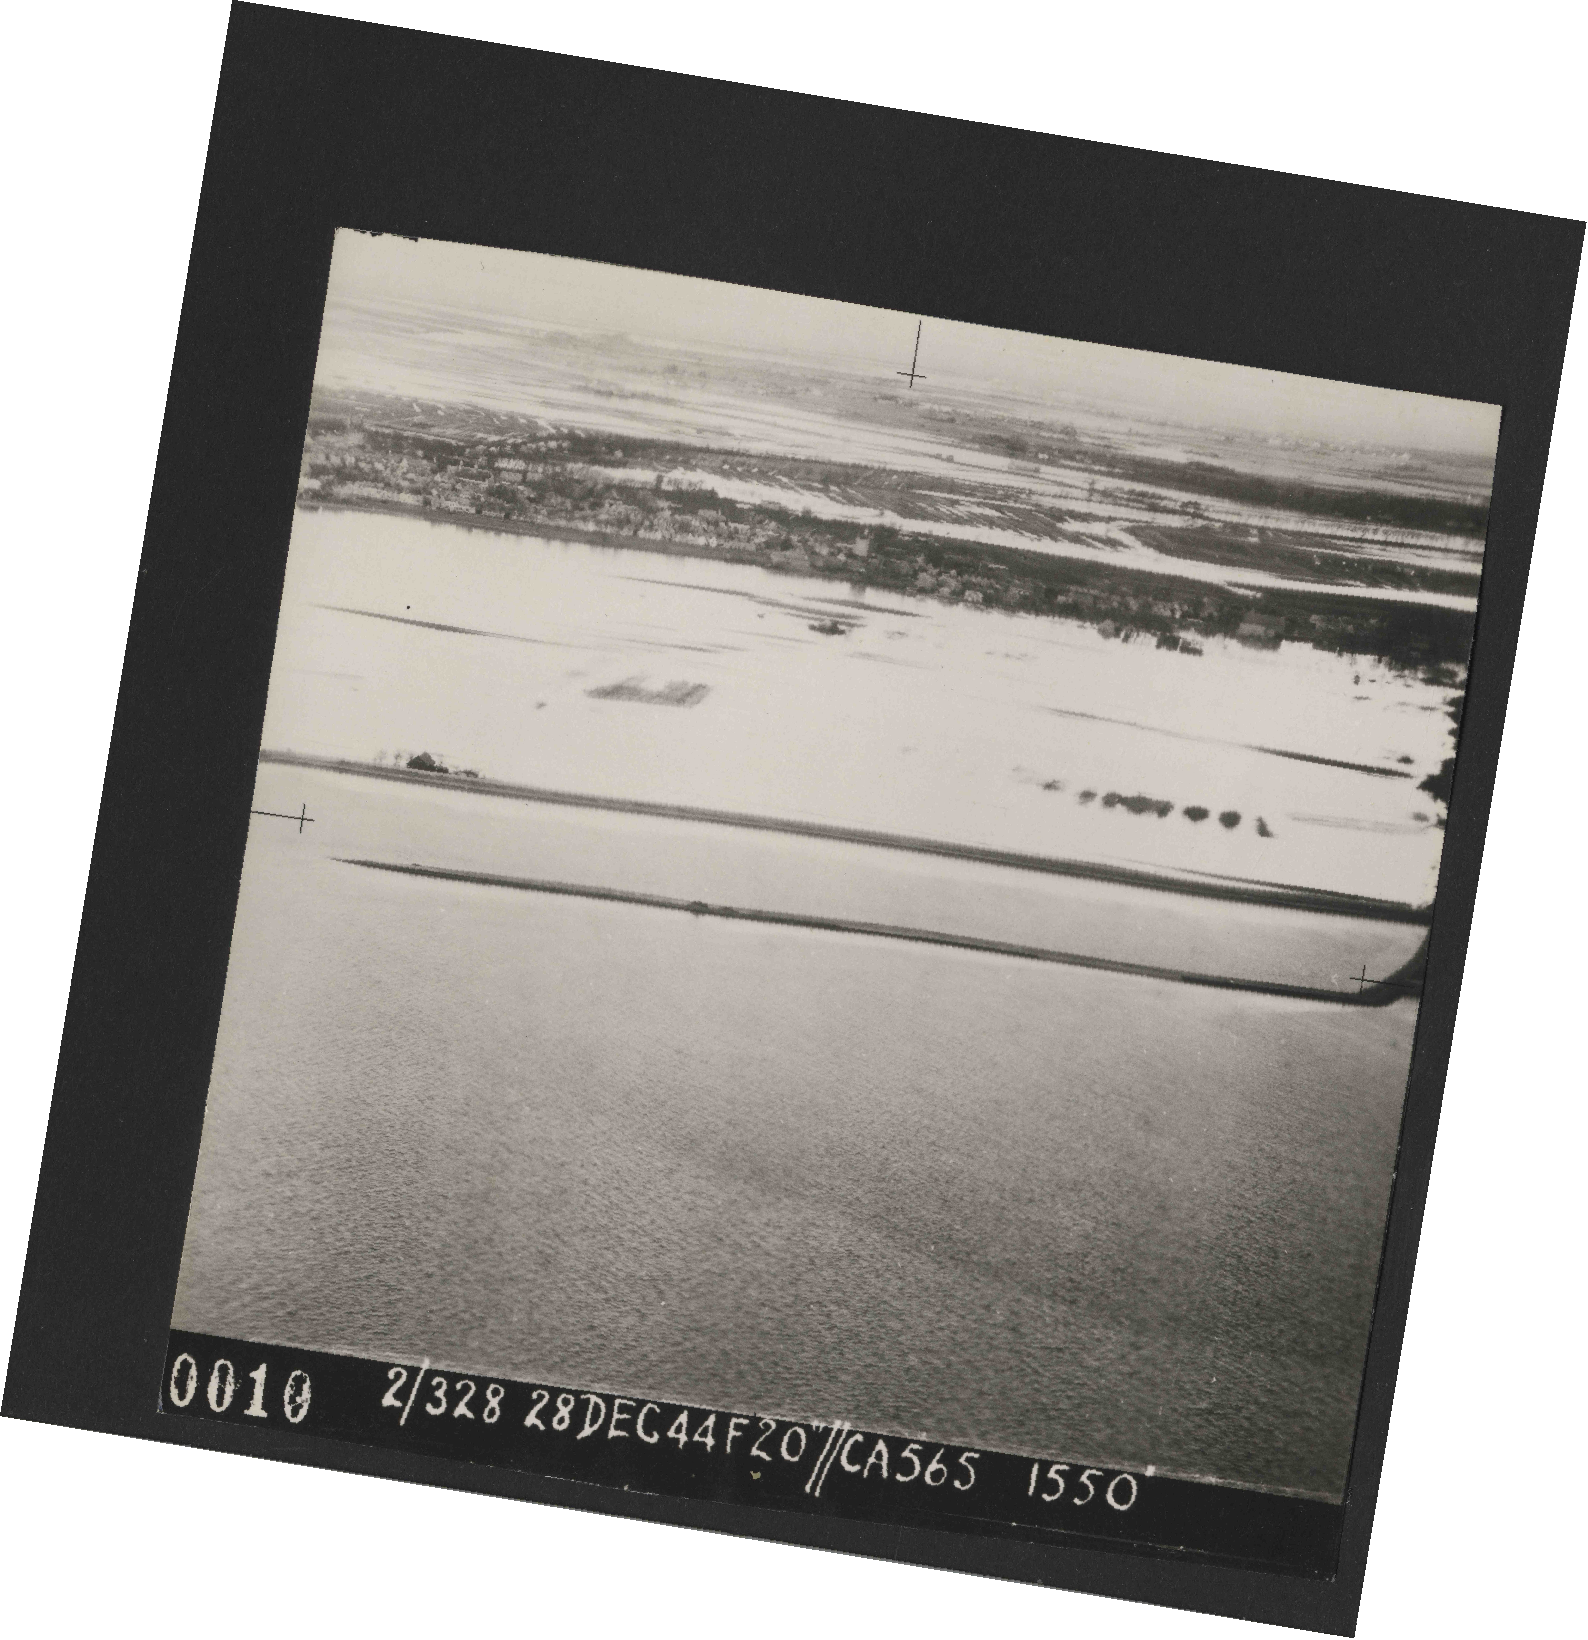 Collection RAF aerial photos 1940-1945 - flight 556, run 01, photo 0010